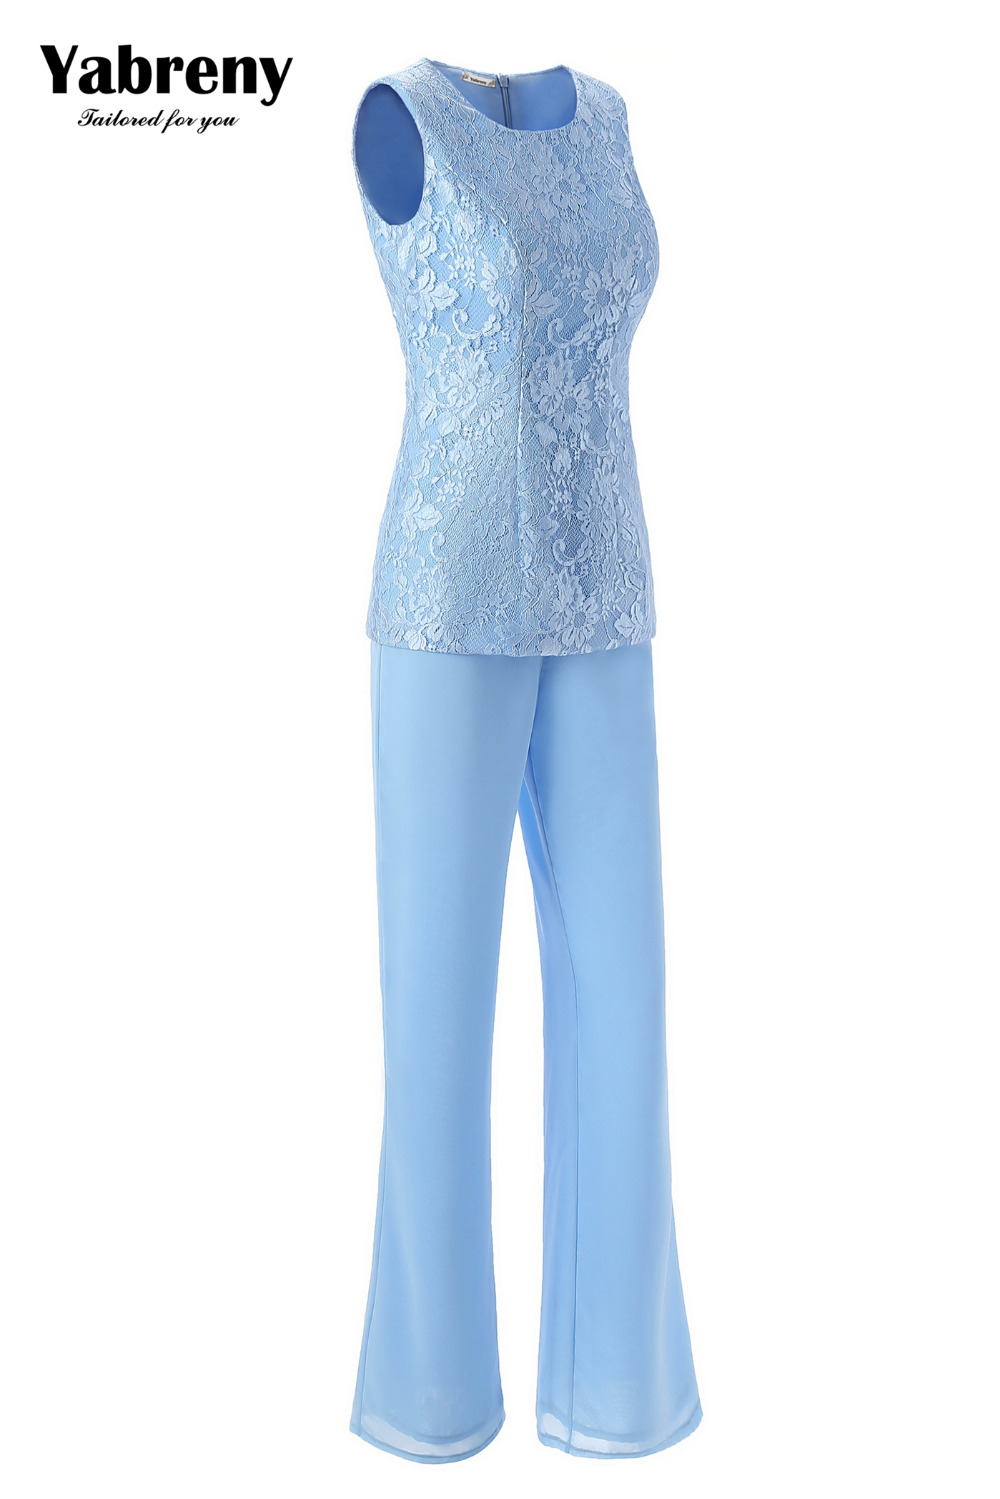 Yabreny Elegant Mother of the Bride Pants suit Sky blue Lace Outfit for Wedding MT001704-1